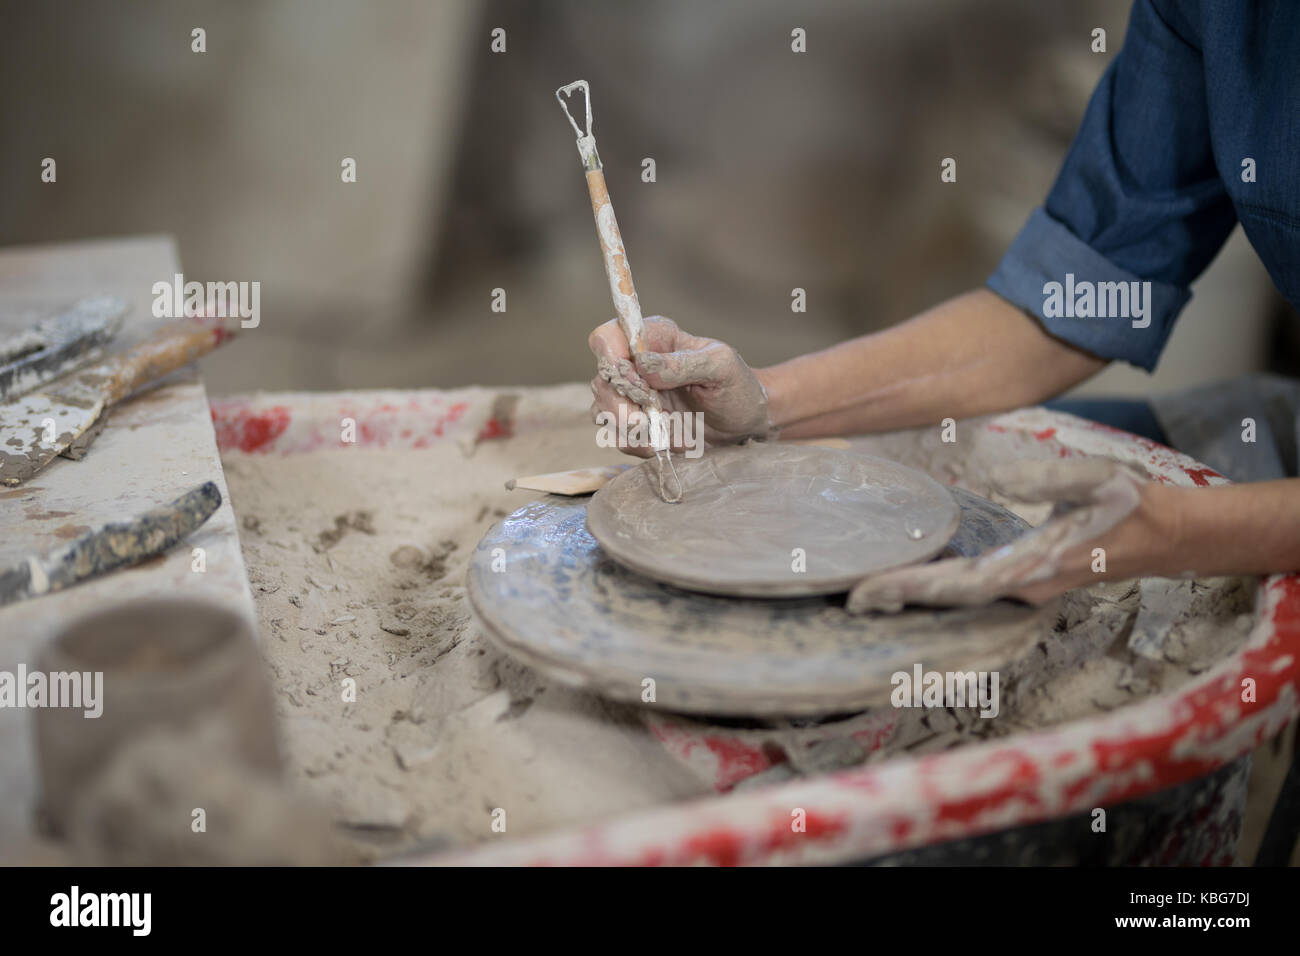 Close-up of female potter molding plate with hand tool - Stock Image